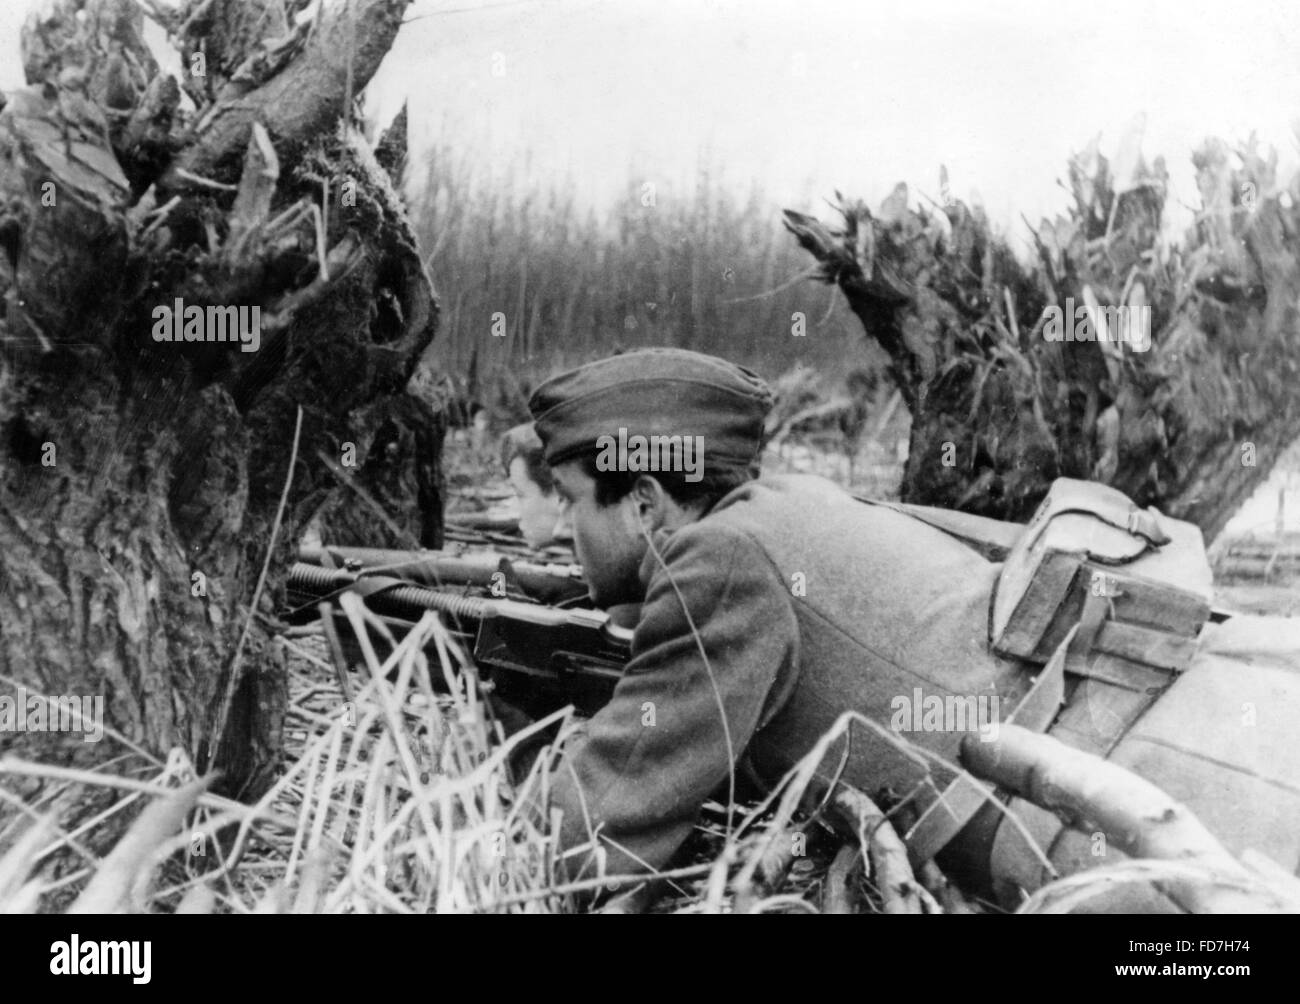 Reconnaissance unit of the Wehrmacht on the Western Front, 1945 - Stock Image